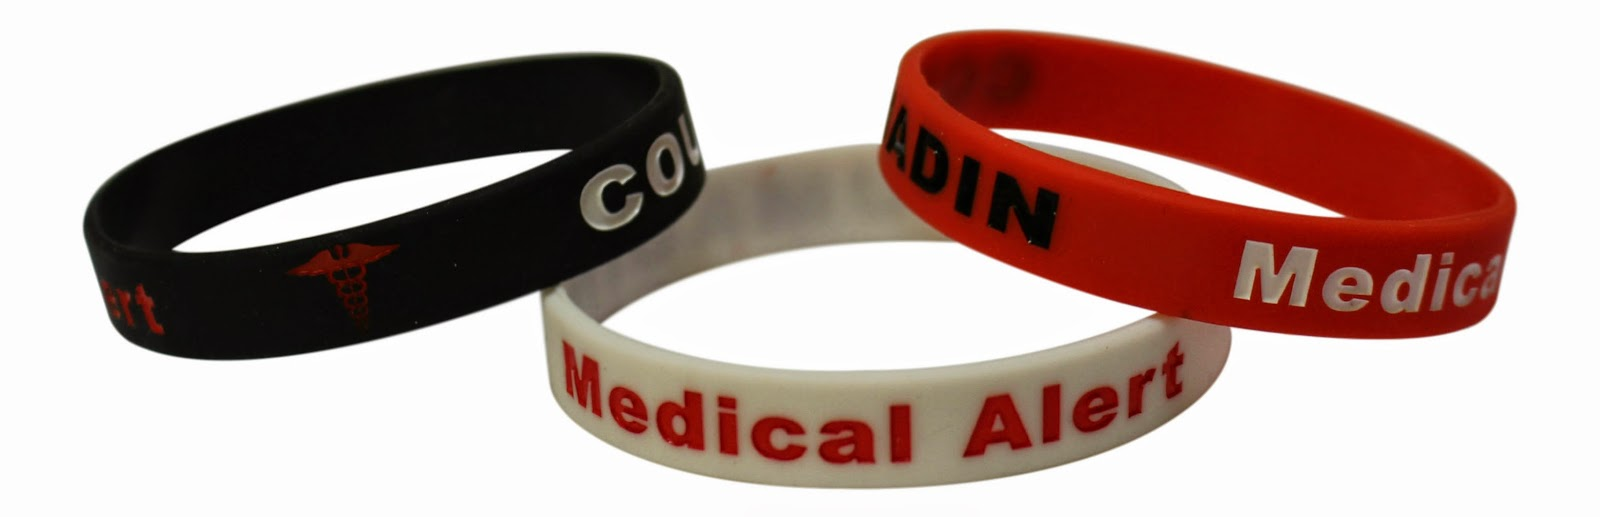 I Received The Opportunity To Review A Set Of 3 Coumadin Bracelets Medical Alert Silicone Wristbands Was So Impressed With Idea Wearing Something